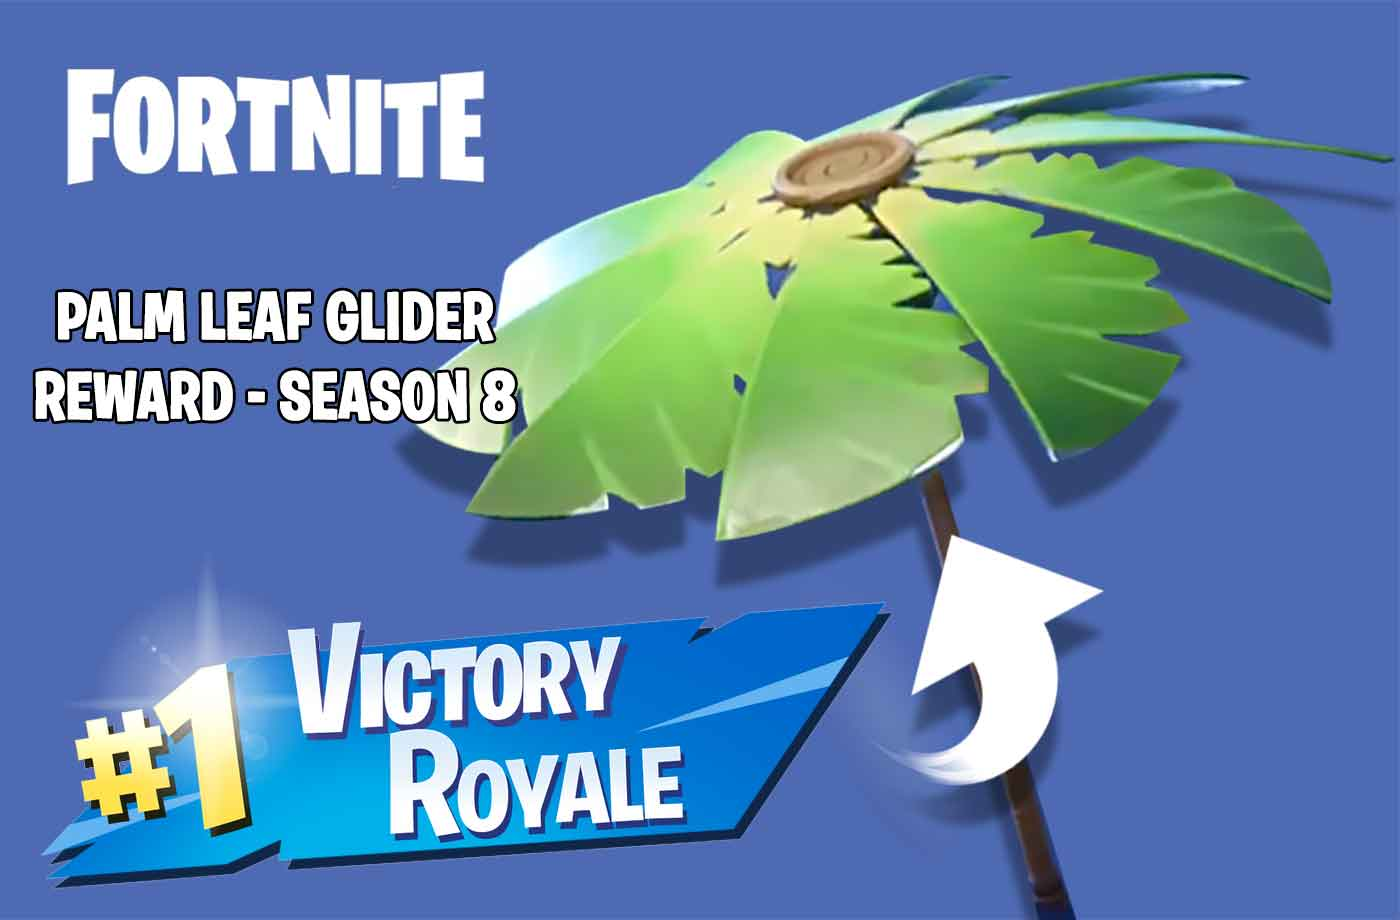 fornite season 8 the glider umbrella palm leaf as a reward for a victory royale top 1 - victory royale fortnite season 8